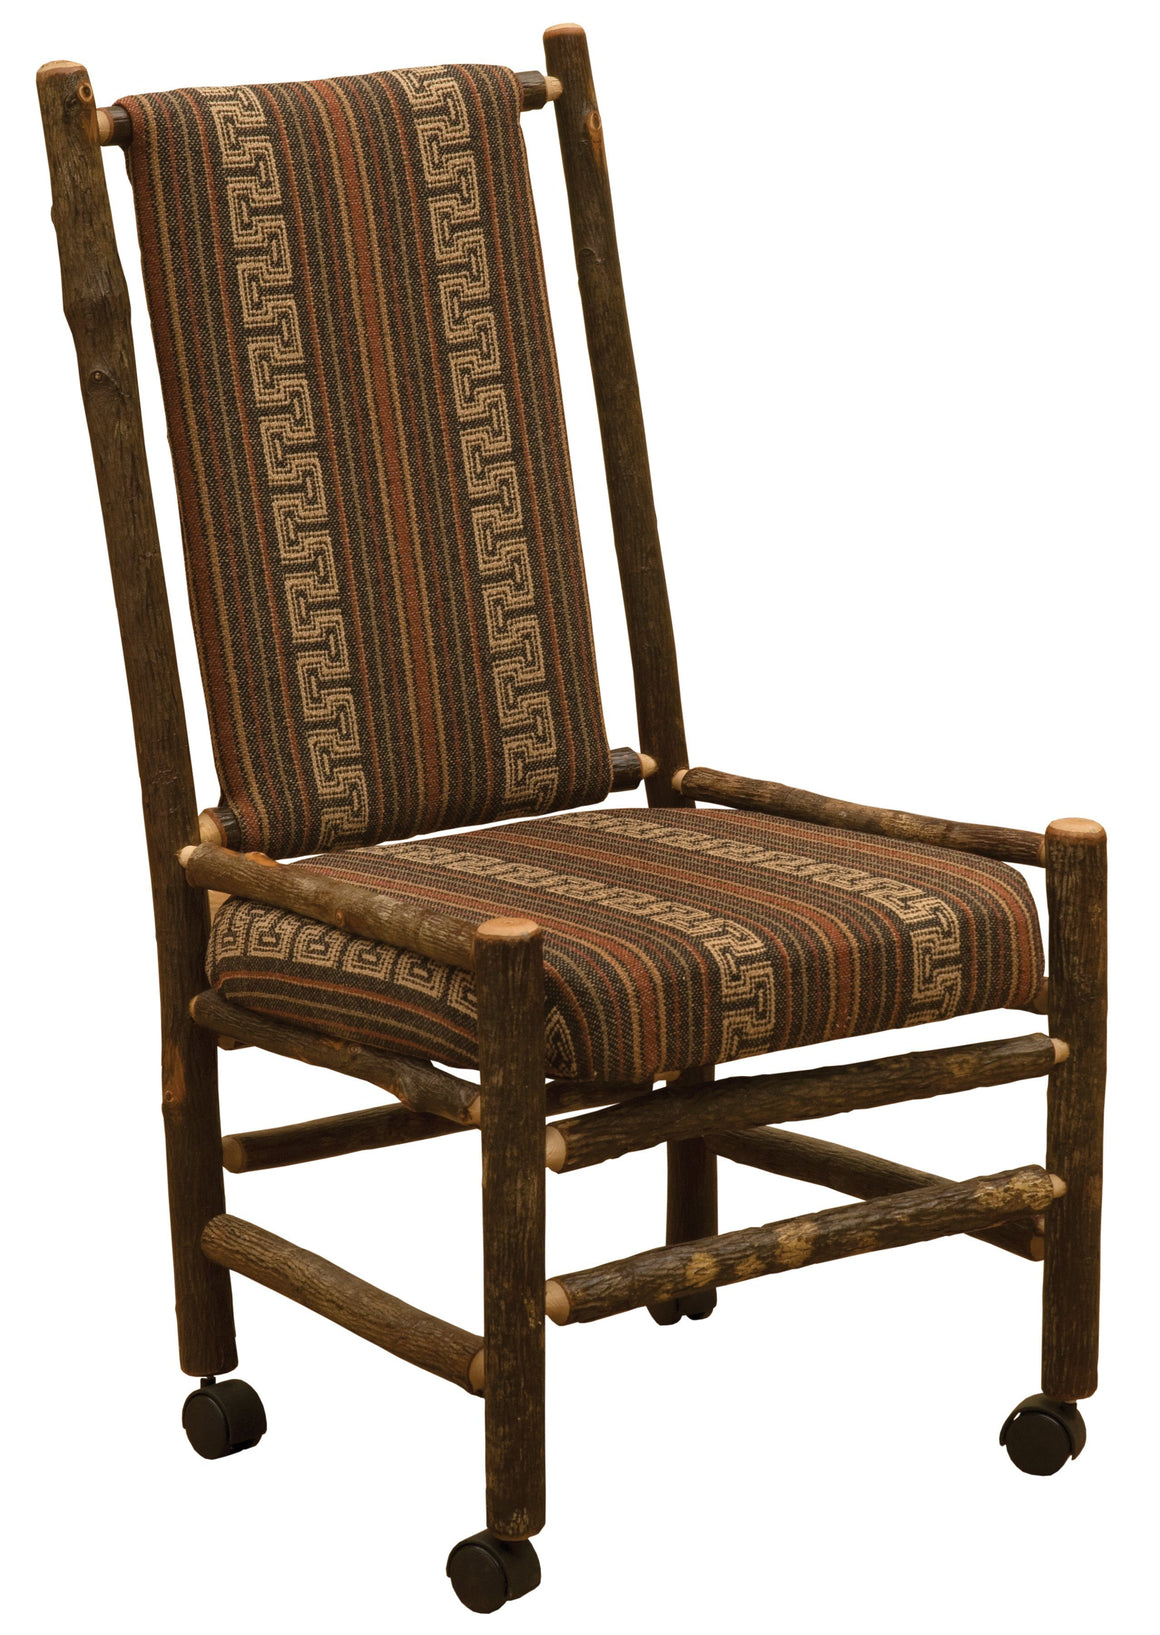 Natural Hickory Log  Executive Chair - Upholstered Back and Seat on Casters - Rustic Deco Incorporated